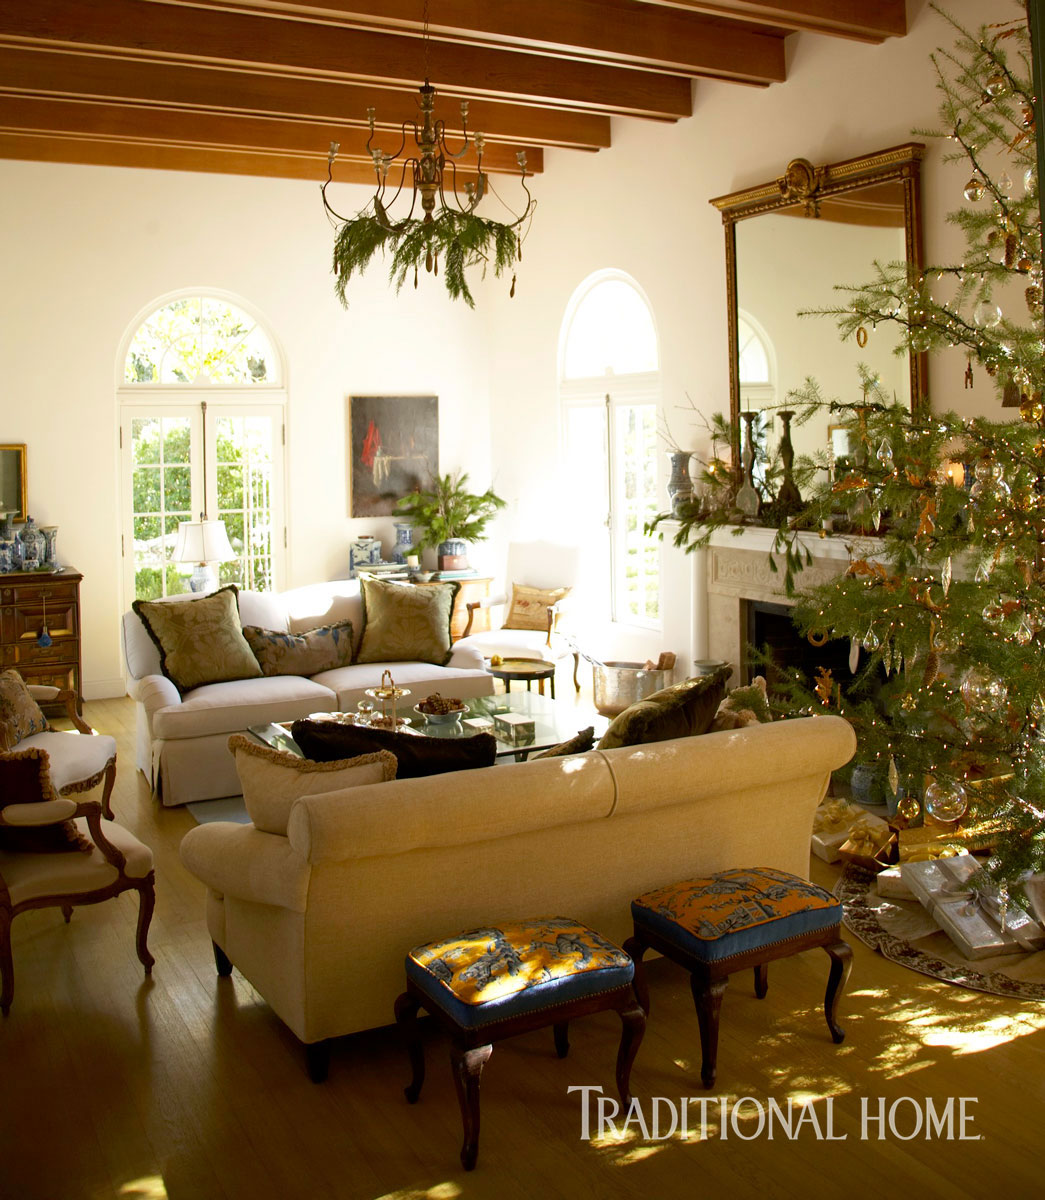 Decorated Homes: Christmas In A Spanish Mission-Style Home